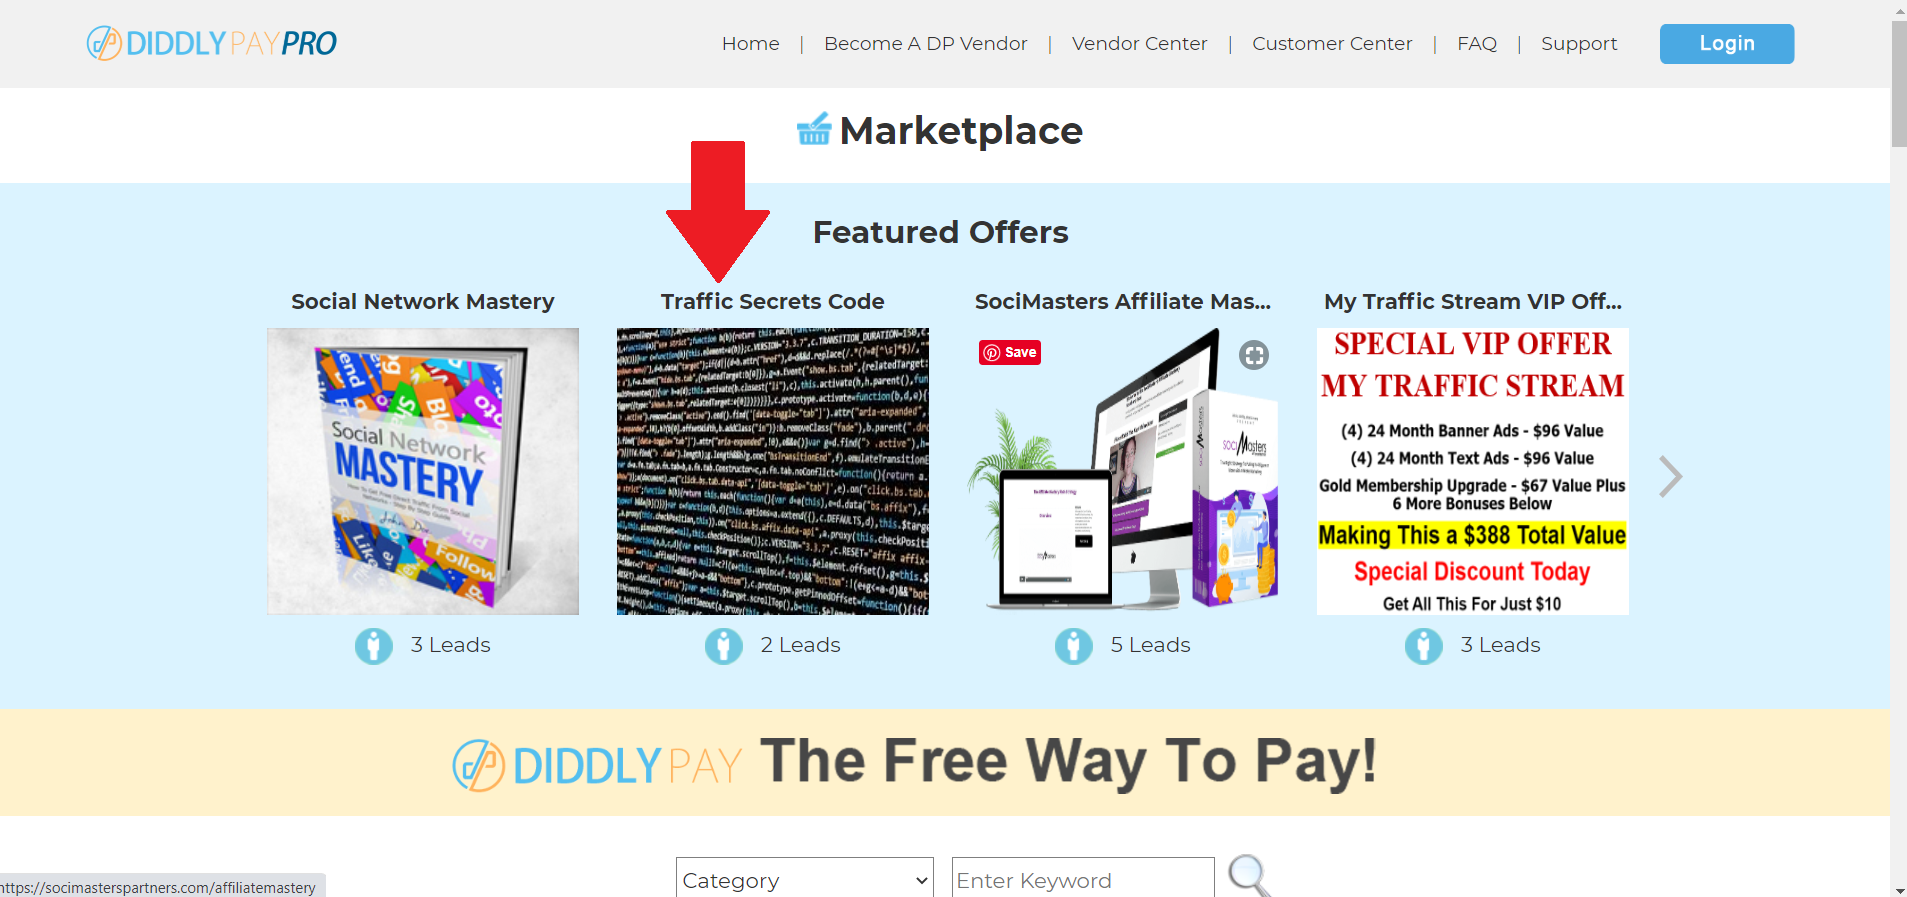 Diddly Pay Pro Marketplace